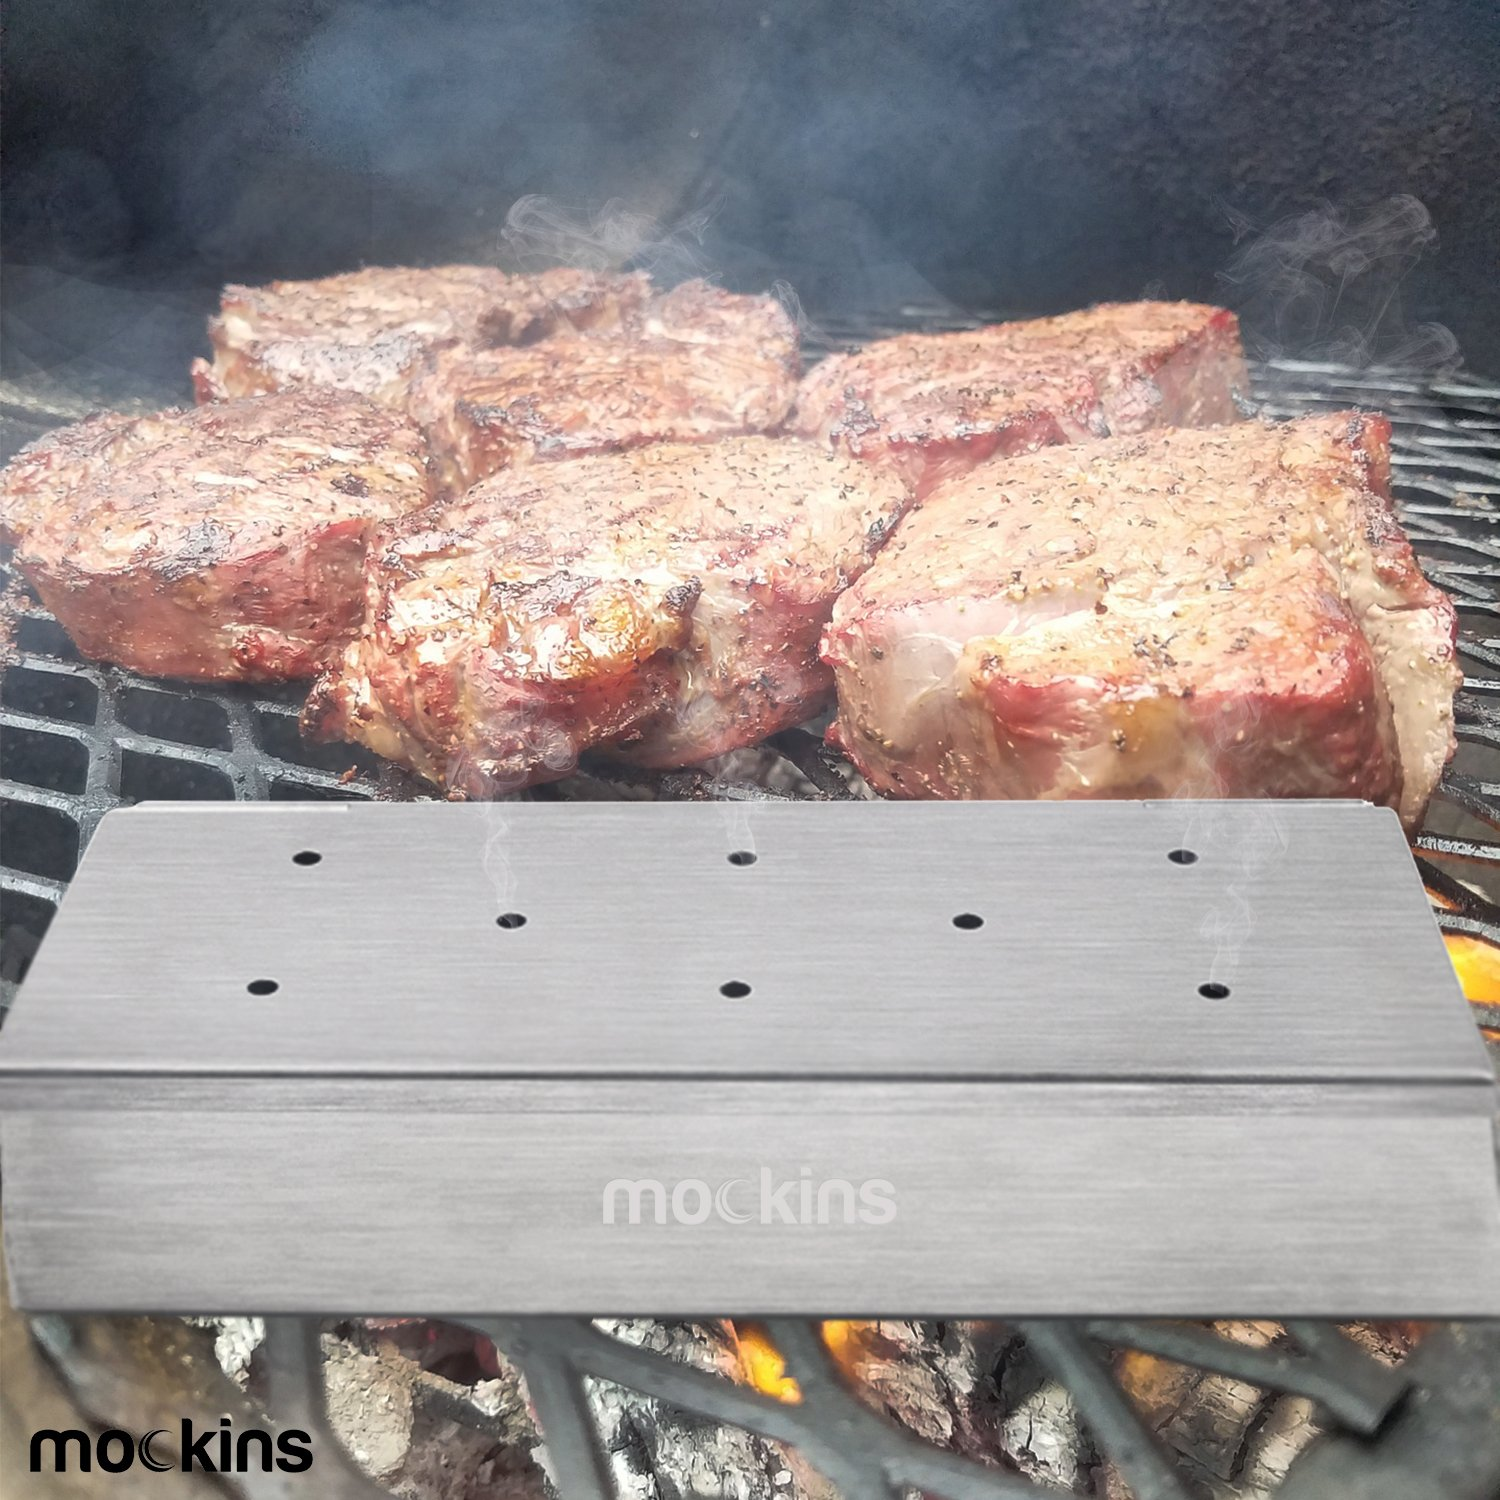 Mockins Even Thicker Stainless Steel BBQ Smoker Box for Grilling Barbecue Wood Chips On Gas Or Charcoal Grill … … by Mockins (Image #4)